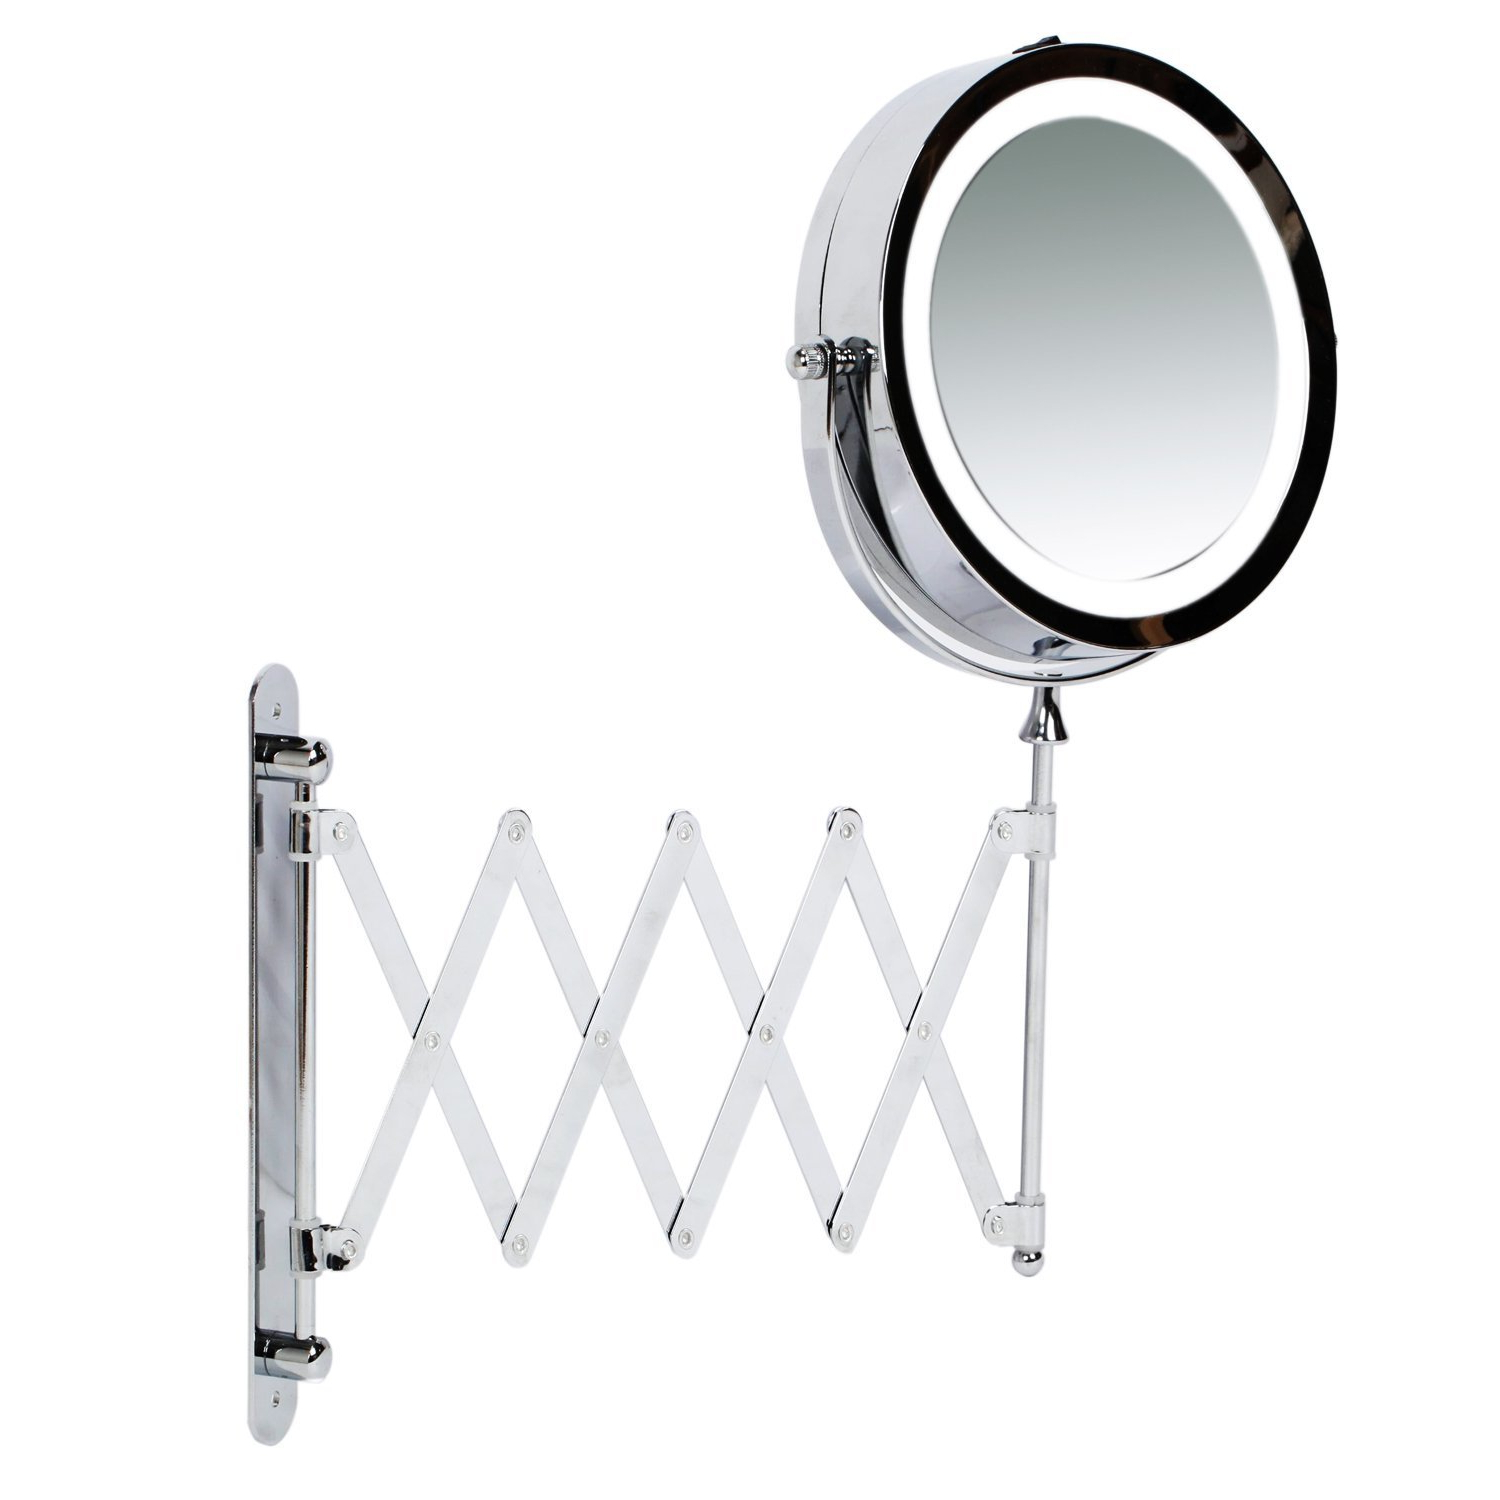 "Kenley Wall Mounted Magnifying Makeup Mirror With Led Light – Extending Vanity Shaving Lighted 7"" Intended For Fashionable Extending Wall Mirrors (View 2 of 20)"